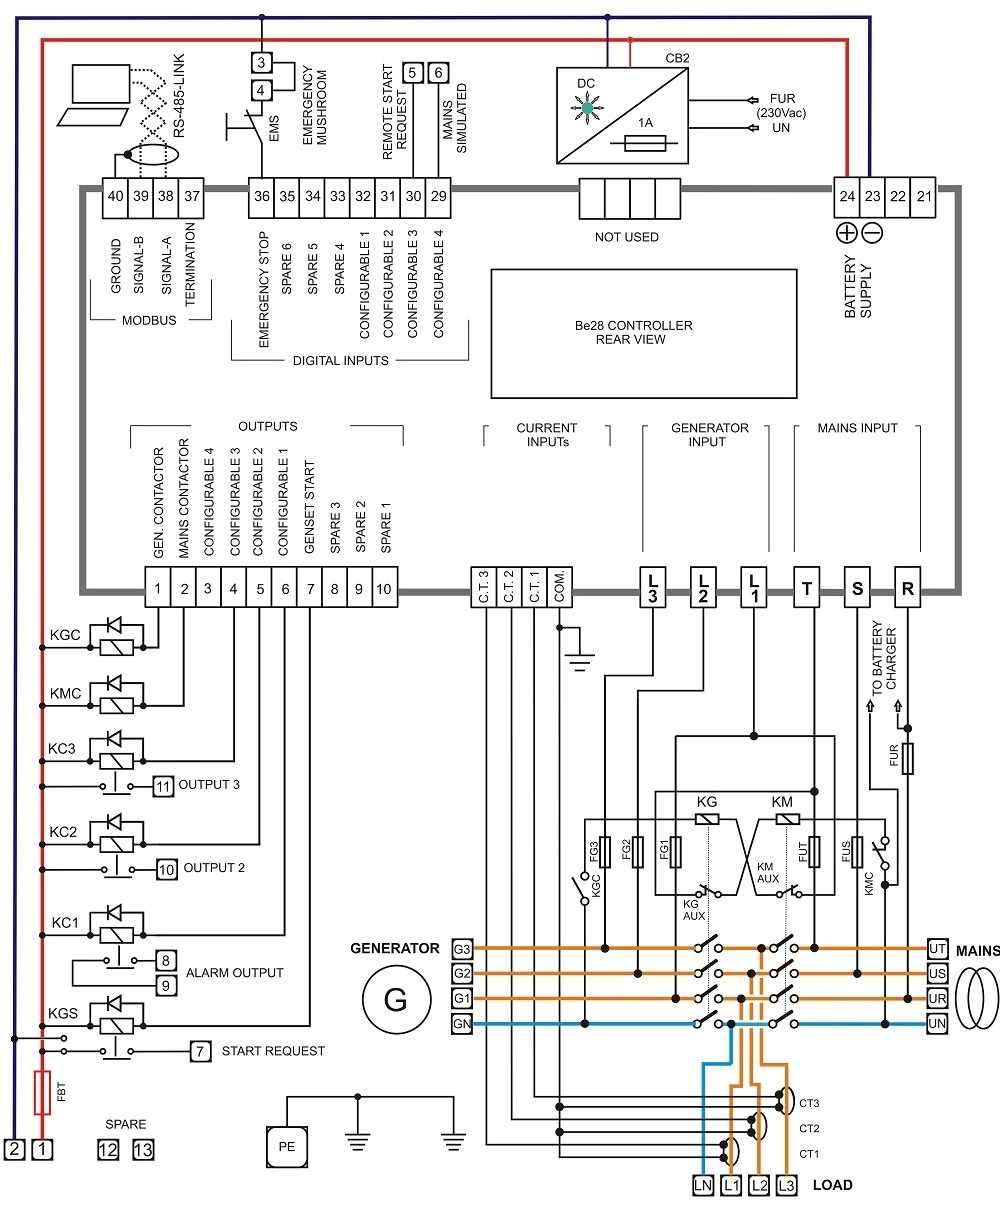 60kVA ATS PANEL WIRING DIAGRAM?resize\\\=665%2C805 citroen relay wiring diagram citroen relay wiring diagram free citroen dispatch wiring diagram at bakdesigns.co